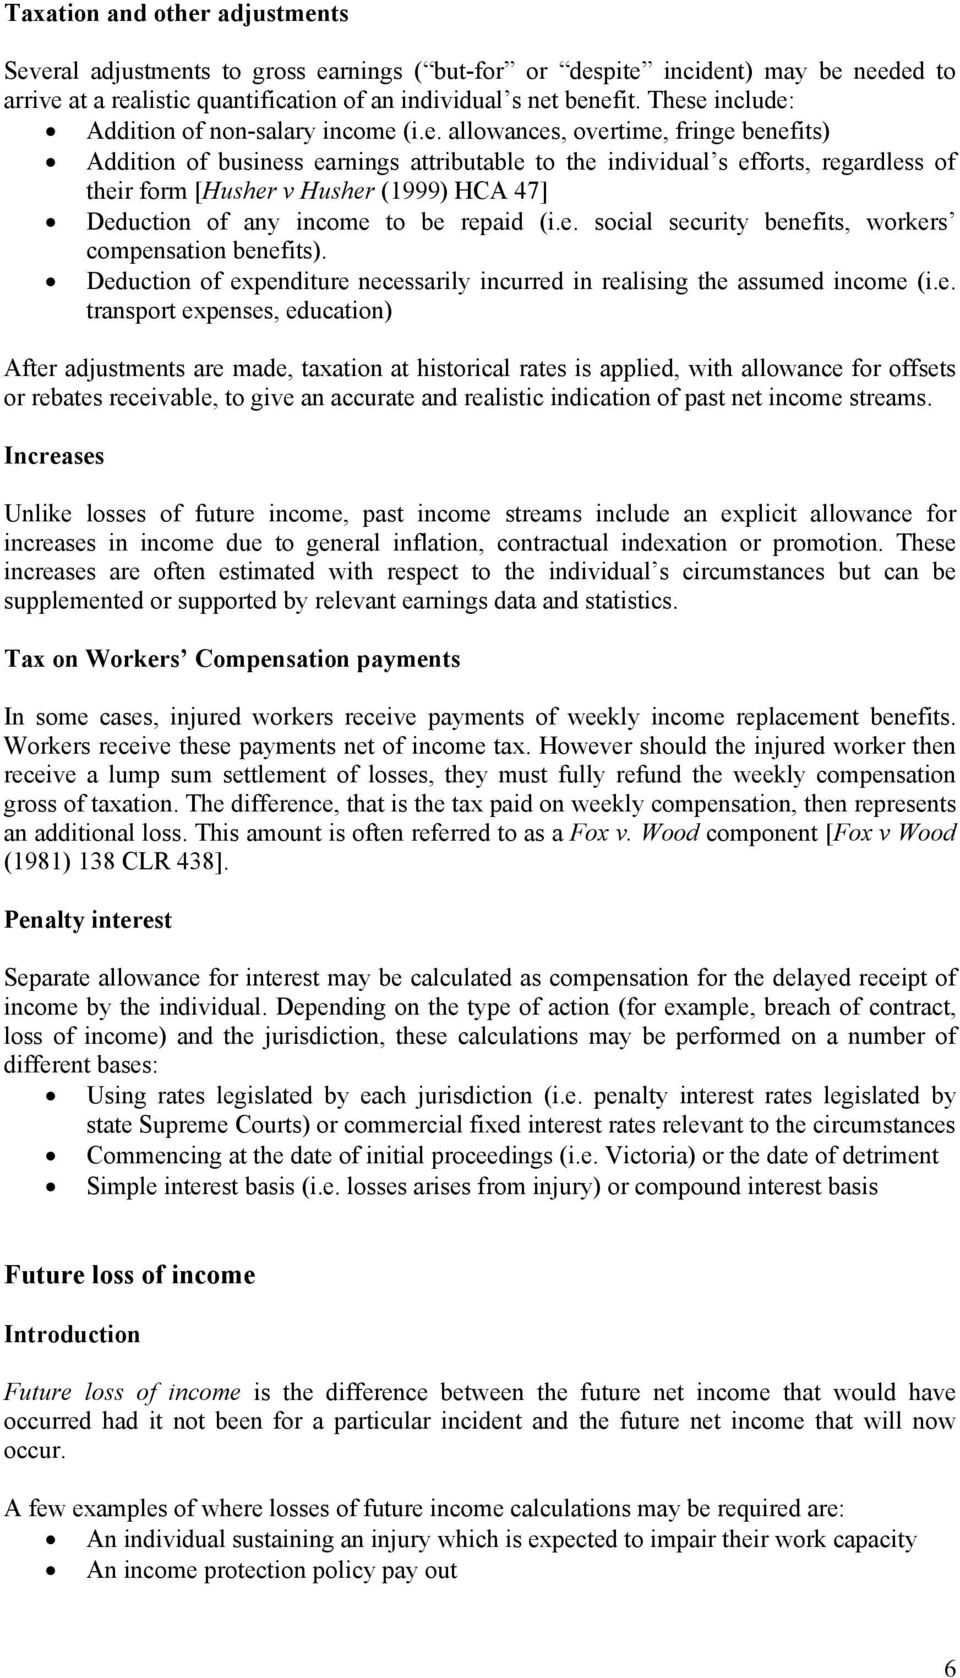 Husher (1999) HCA 47] Deduction of any income to be repaid (i.e. social security benefits, workers compensation benefits).